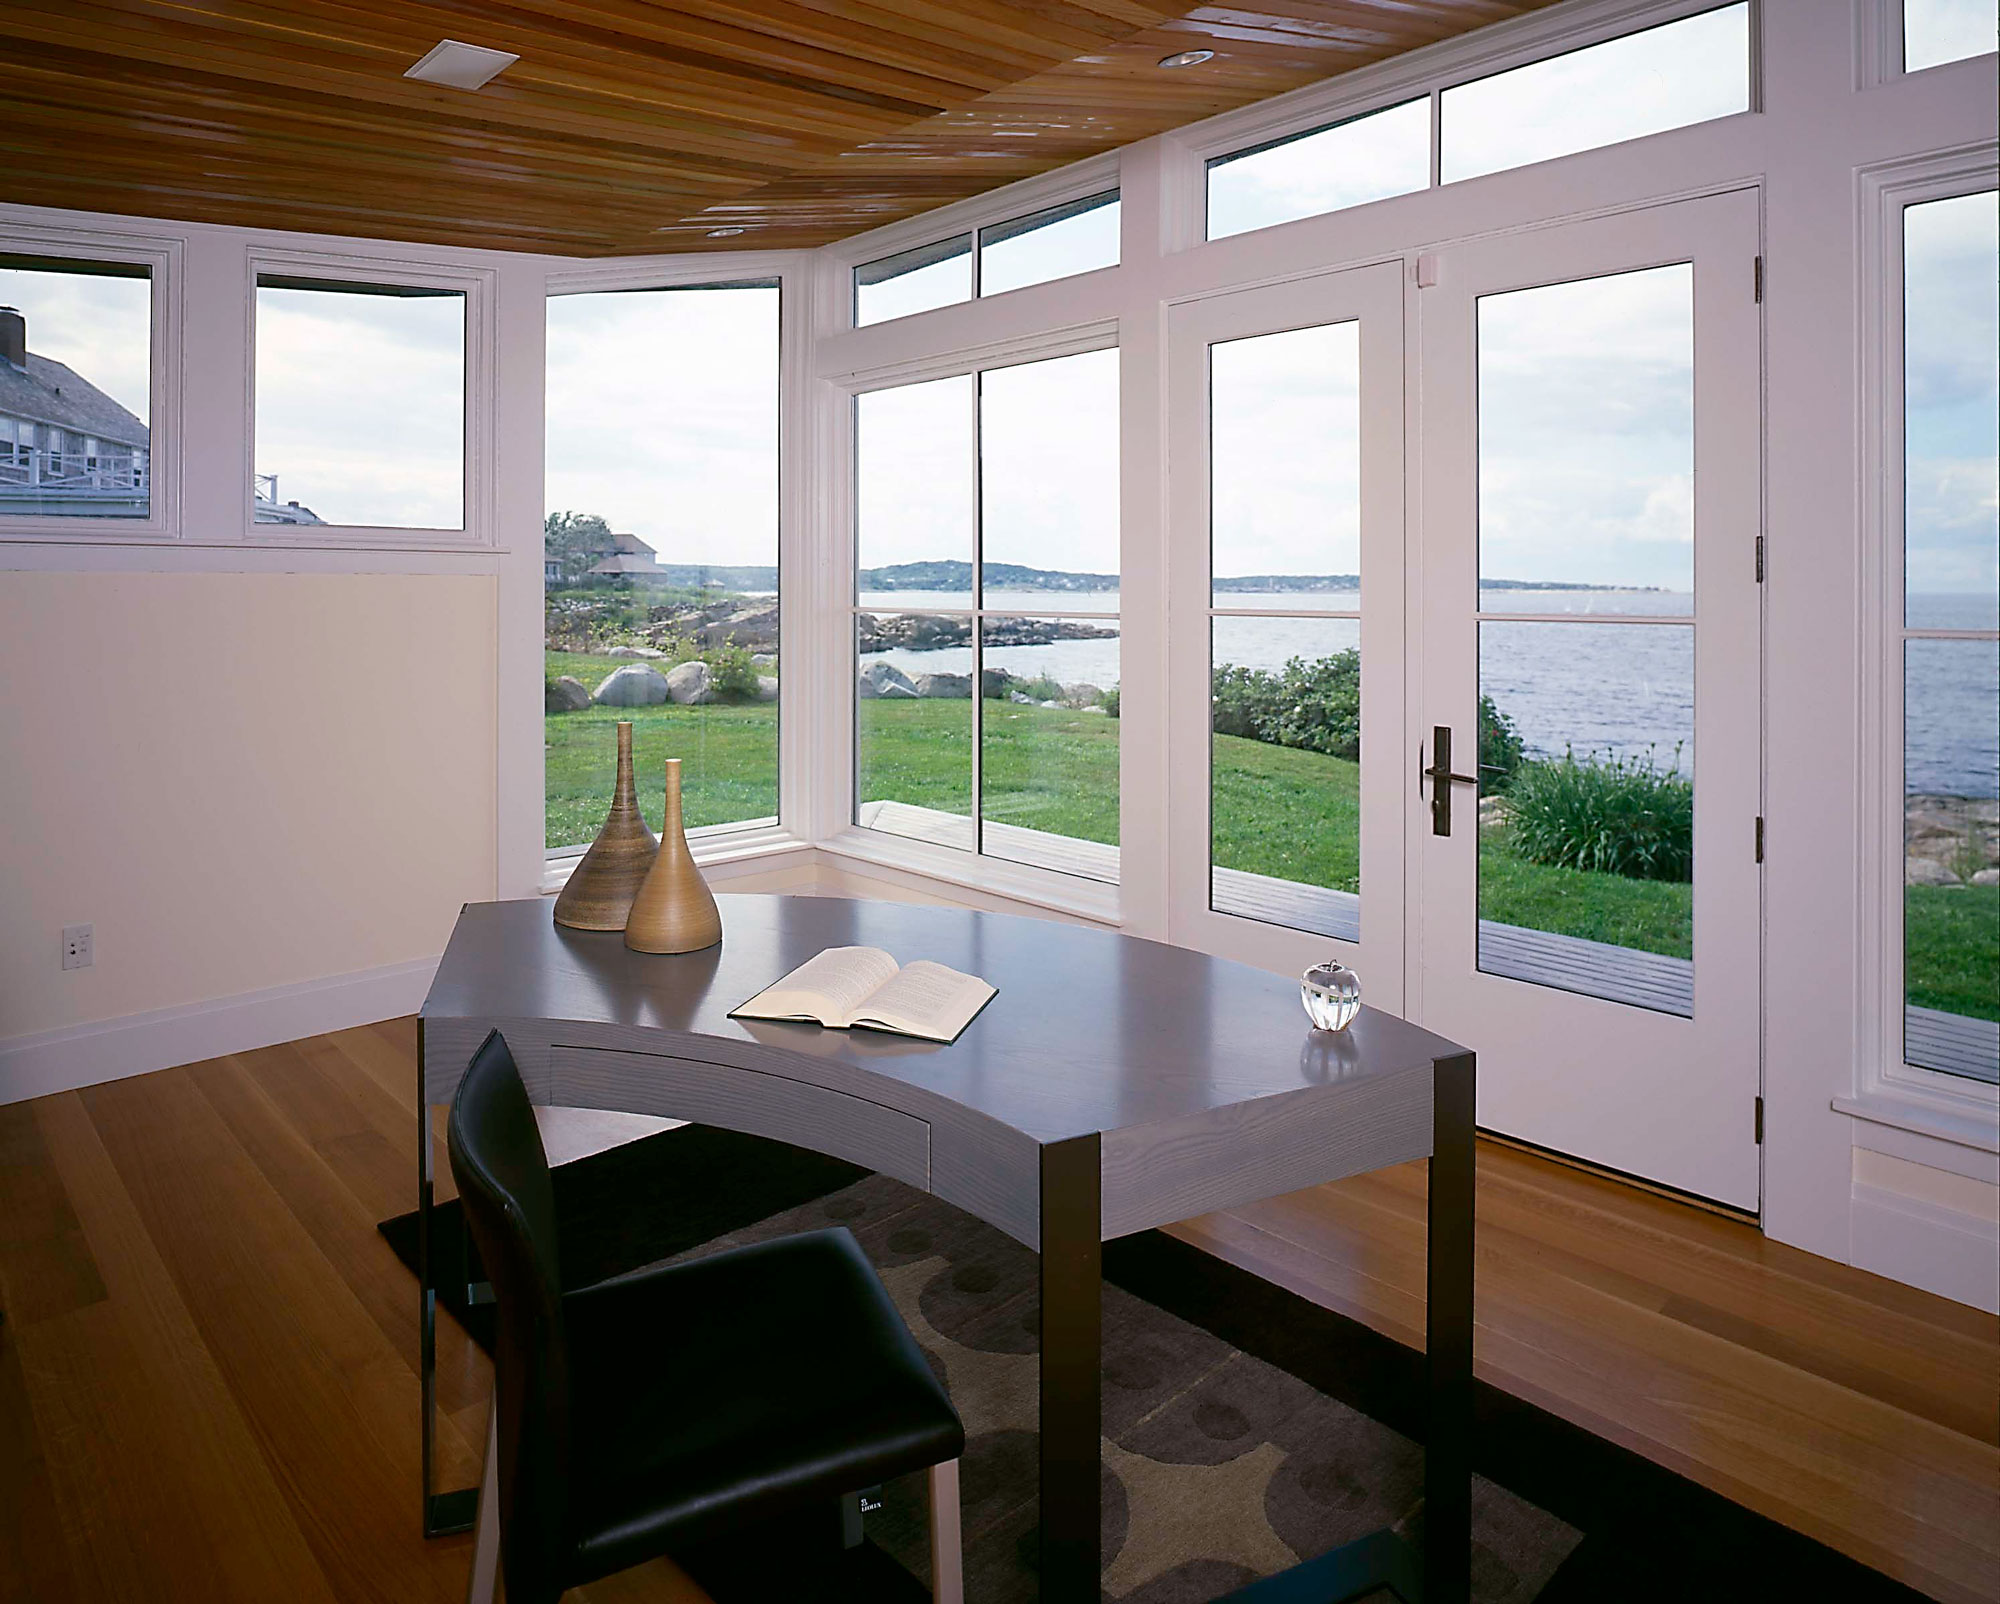 interior of home office with ocean views and wood ceiling